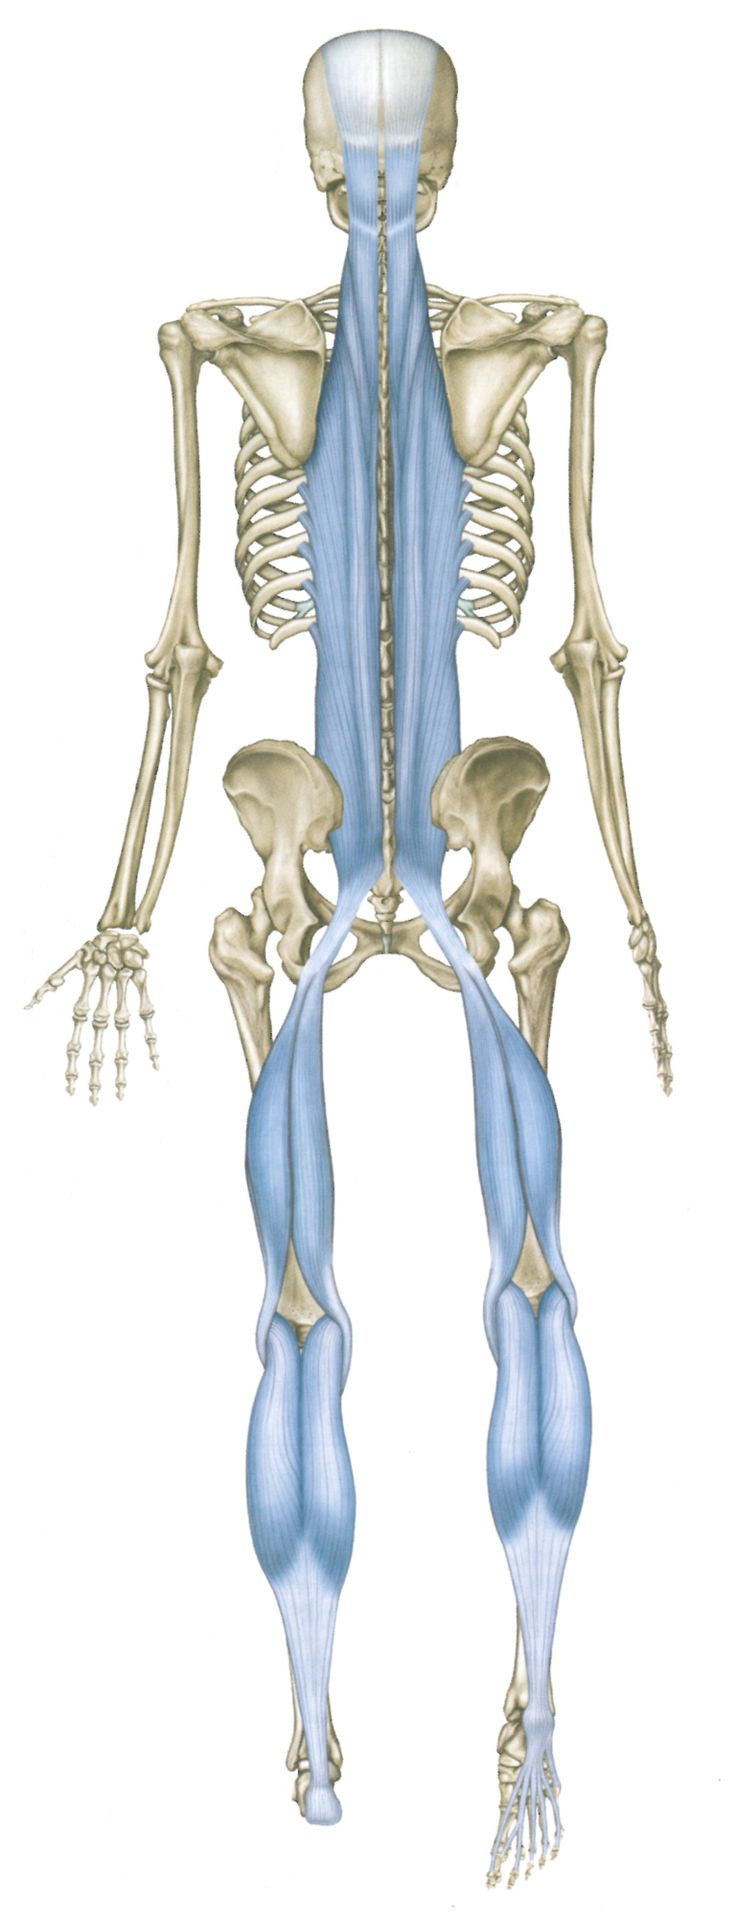 There is a myofascial connection called the Superficial Back Line (SBL) that extends from the bottom of your toes, up the back of your body, and to the top of your head. Unfortunately, when most people treat back pain, they try to break the body down into separate segments and only treat the segment that hurts. […]